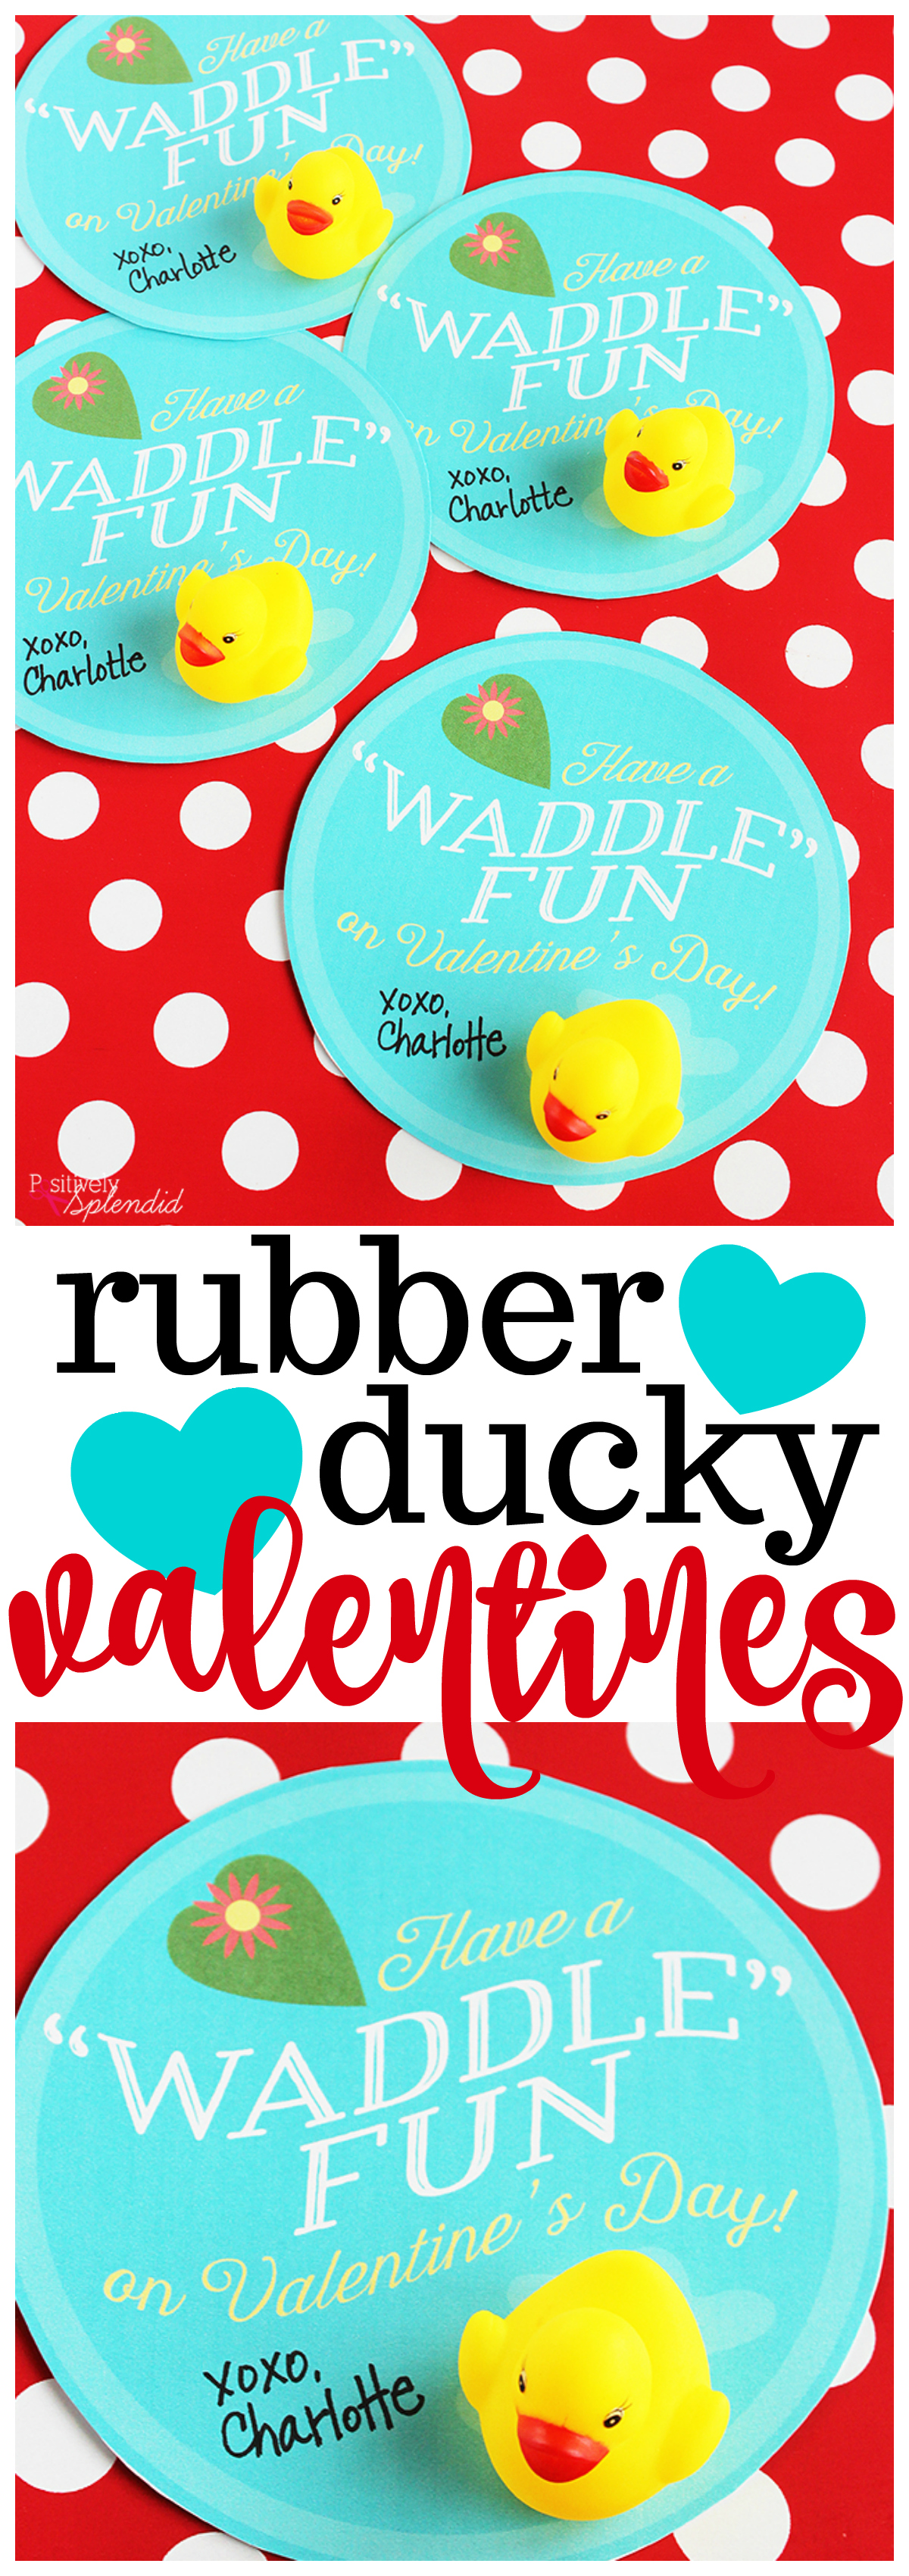 Printable Rubber Duck Valentine Cards for Kids